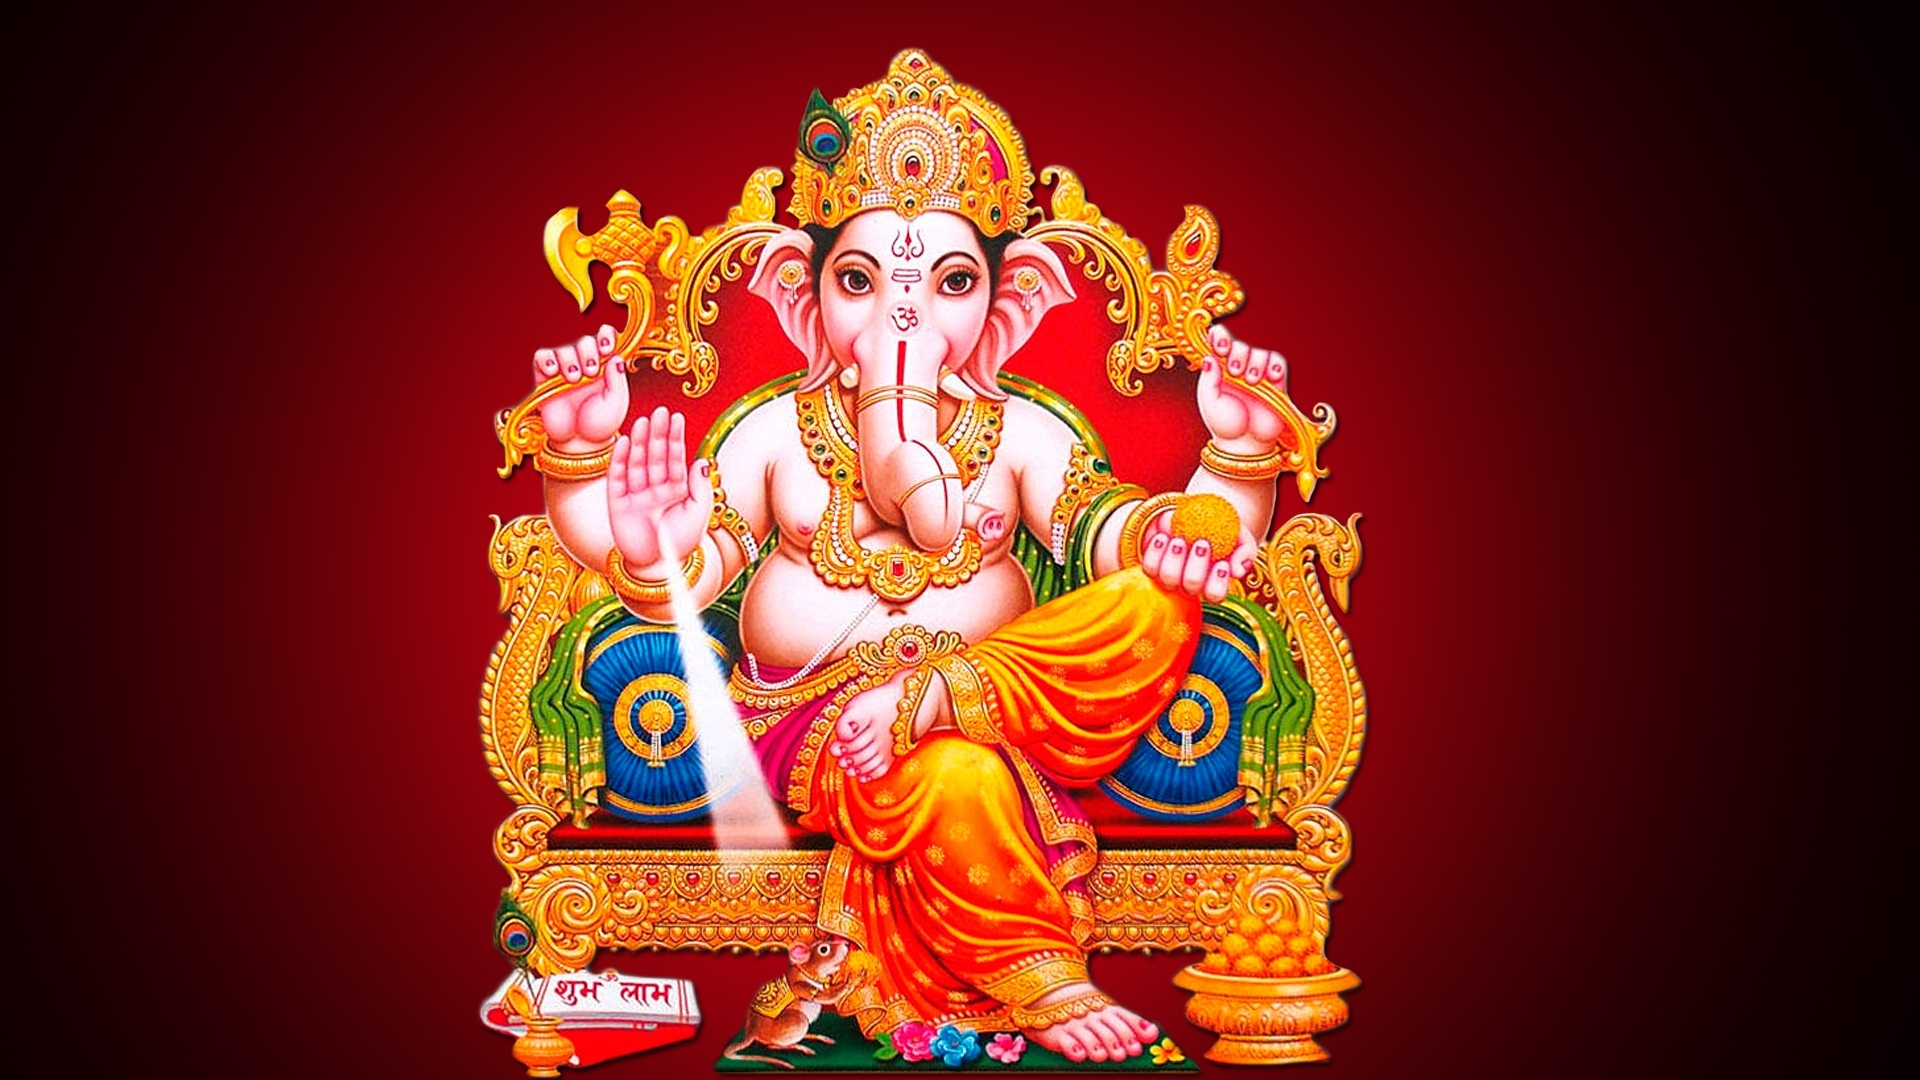 Hd wallpaper ganesh - Download Ganesh Chaturthi Hd Wallpaper